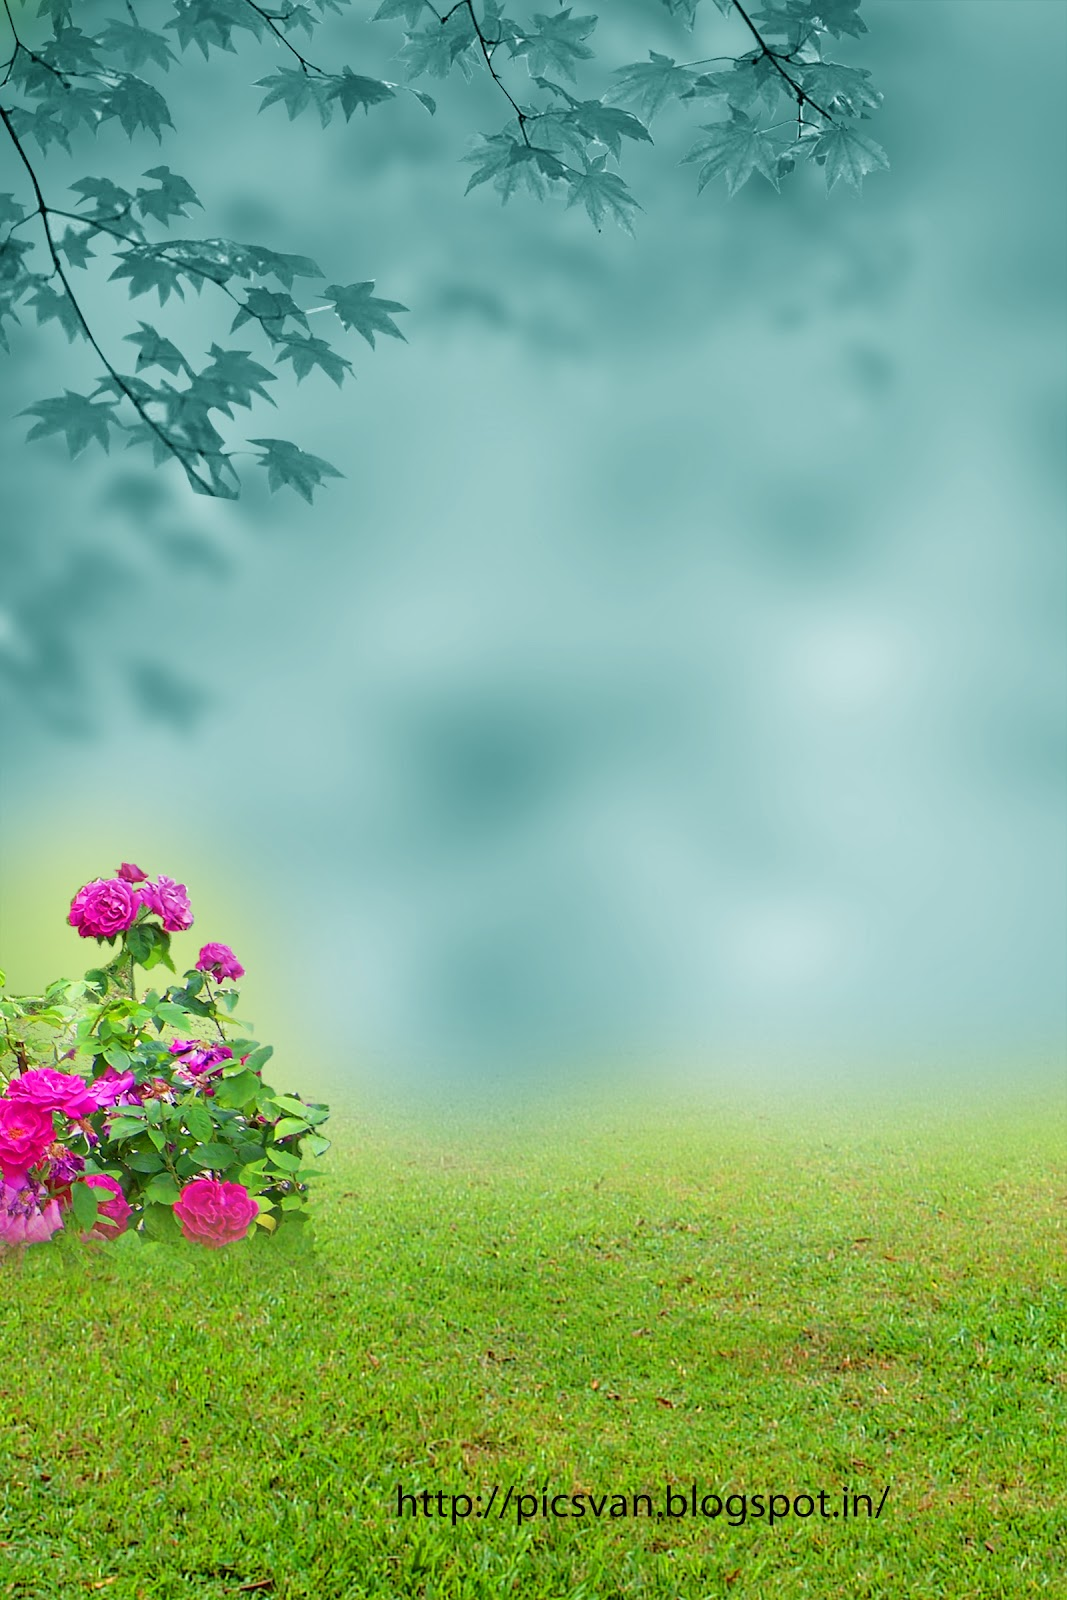 Nature Background For Photoshop Editing Services